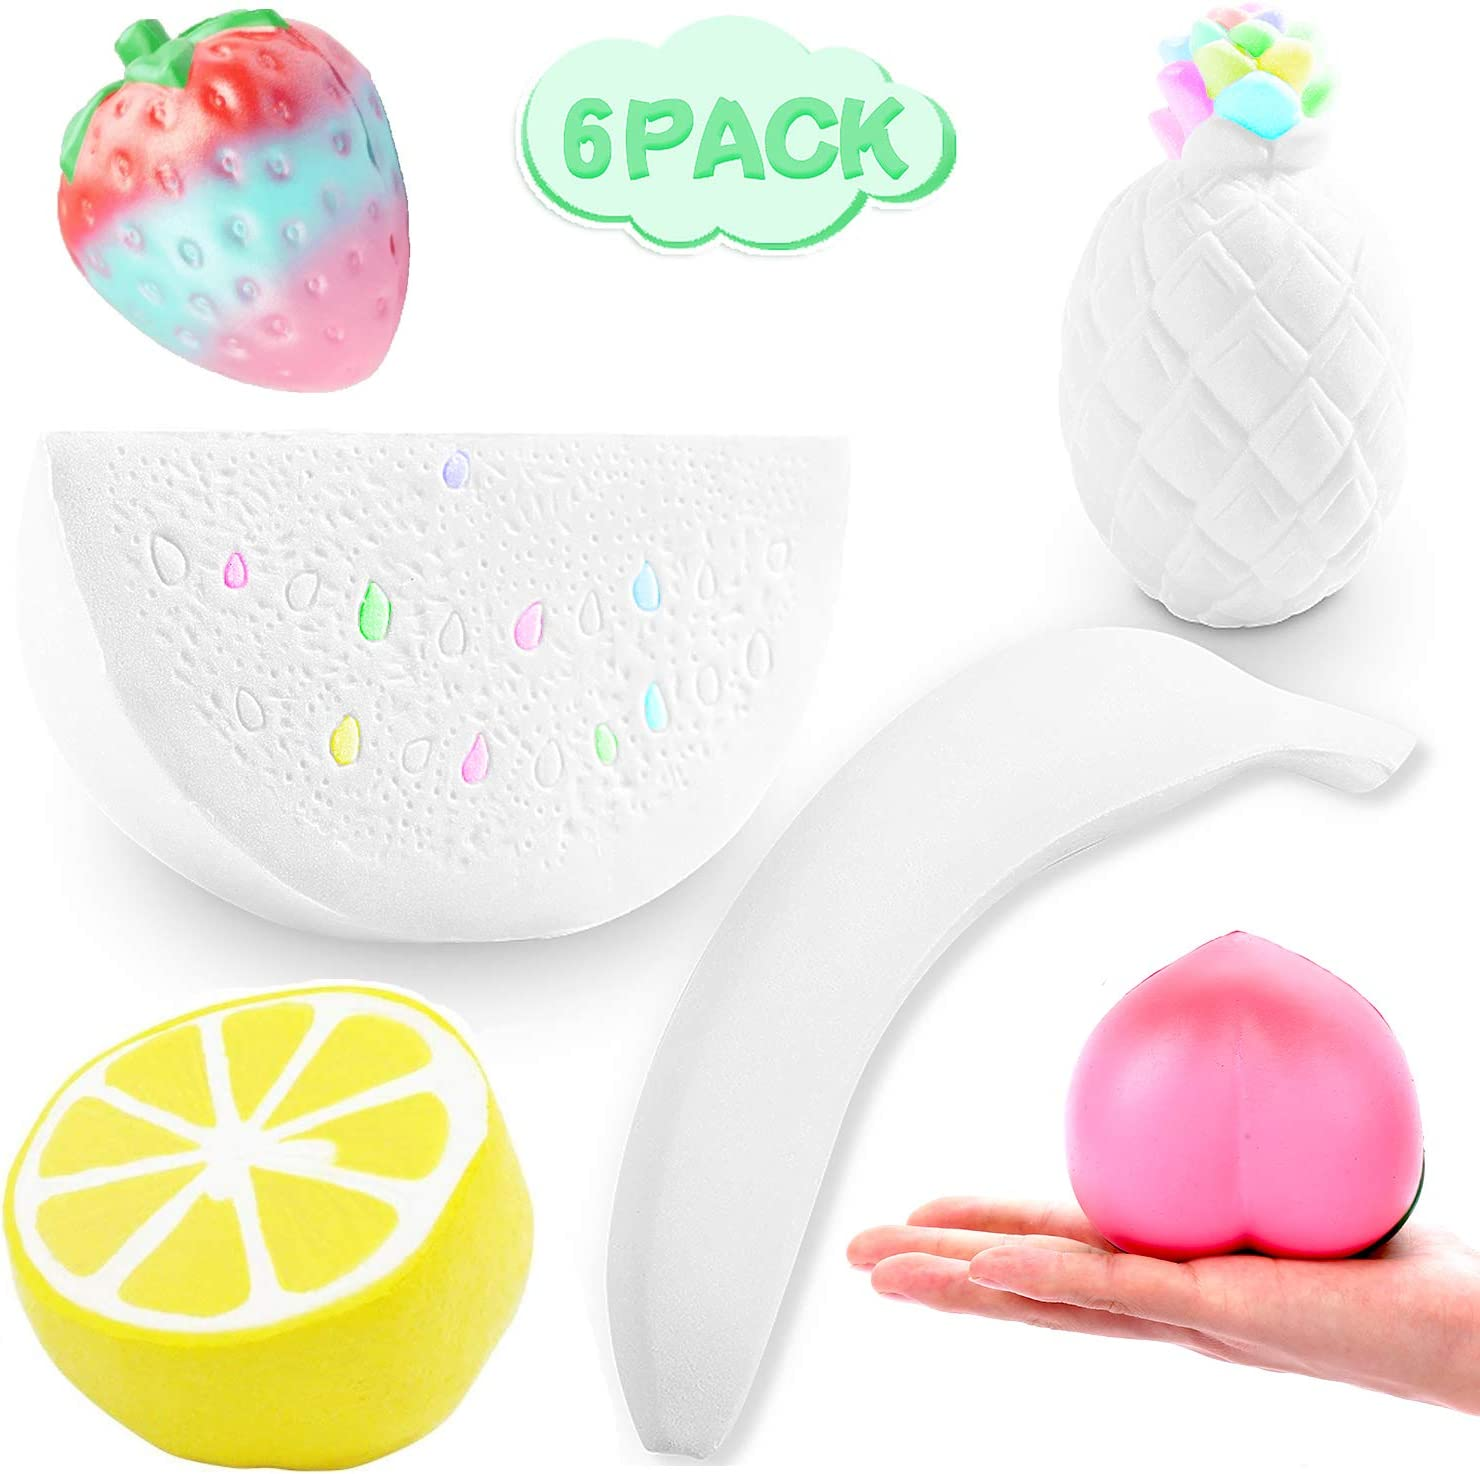 6PCS DIY Squishy Paint Your Own Squishies Kit, Top Kids Arts and Crafts Toy, Slow Rising Strawberry Peach Banana Lemon Watermelon Pineapple DIY Fruit Squishies Cream Scented Kawaii Toys for Adults